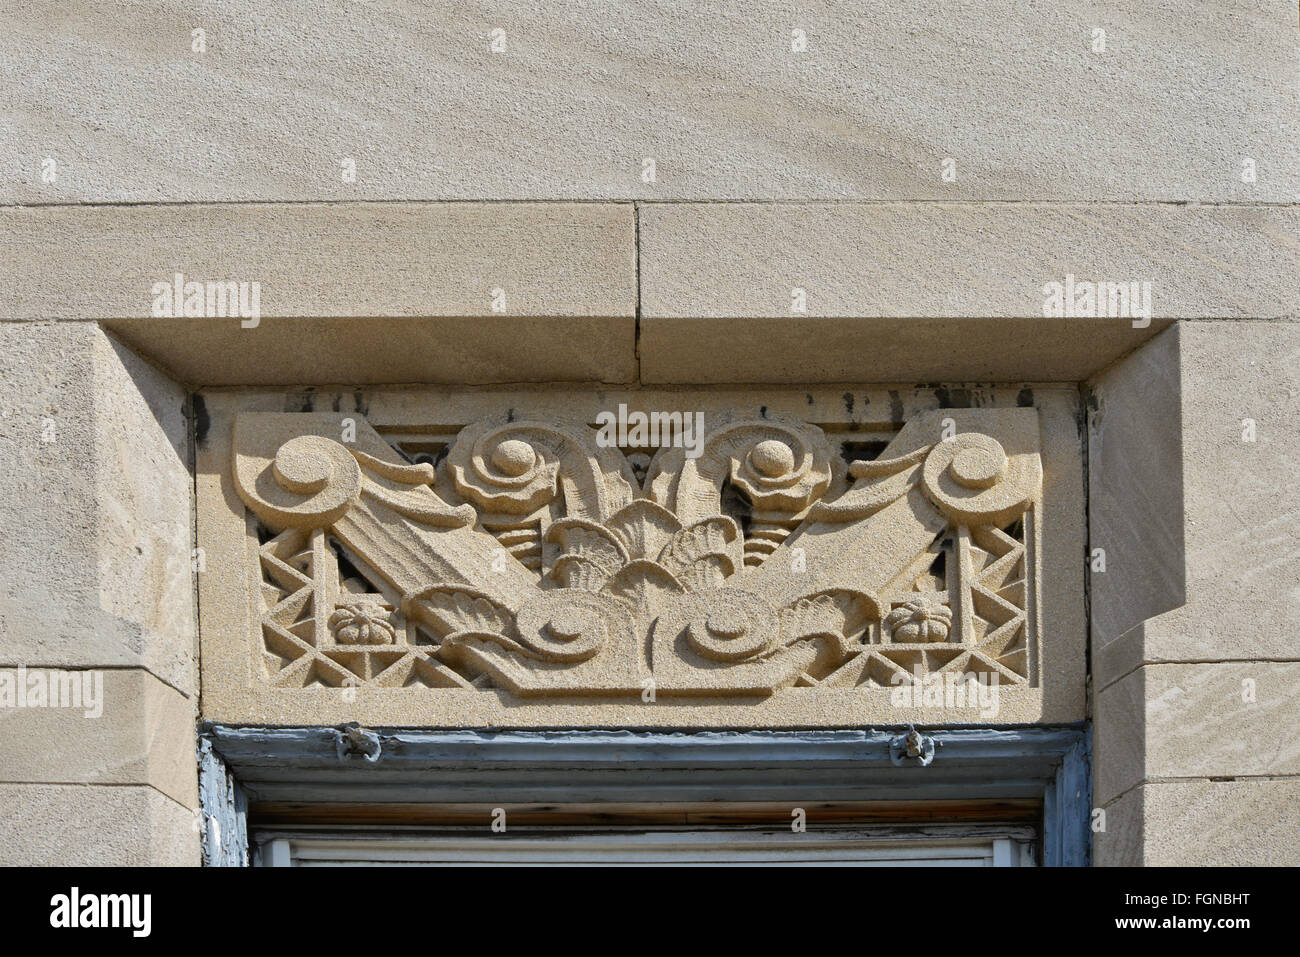 Decoration Art Deco Art Deco Decoration On Older Building Stock Photo 96356452 Alamy